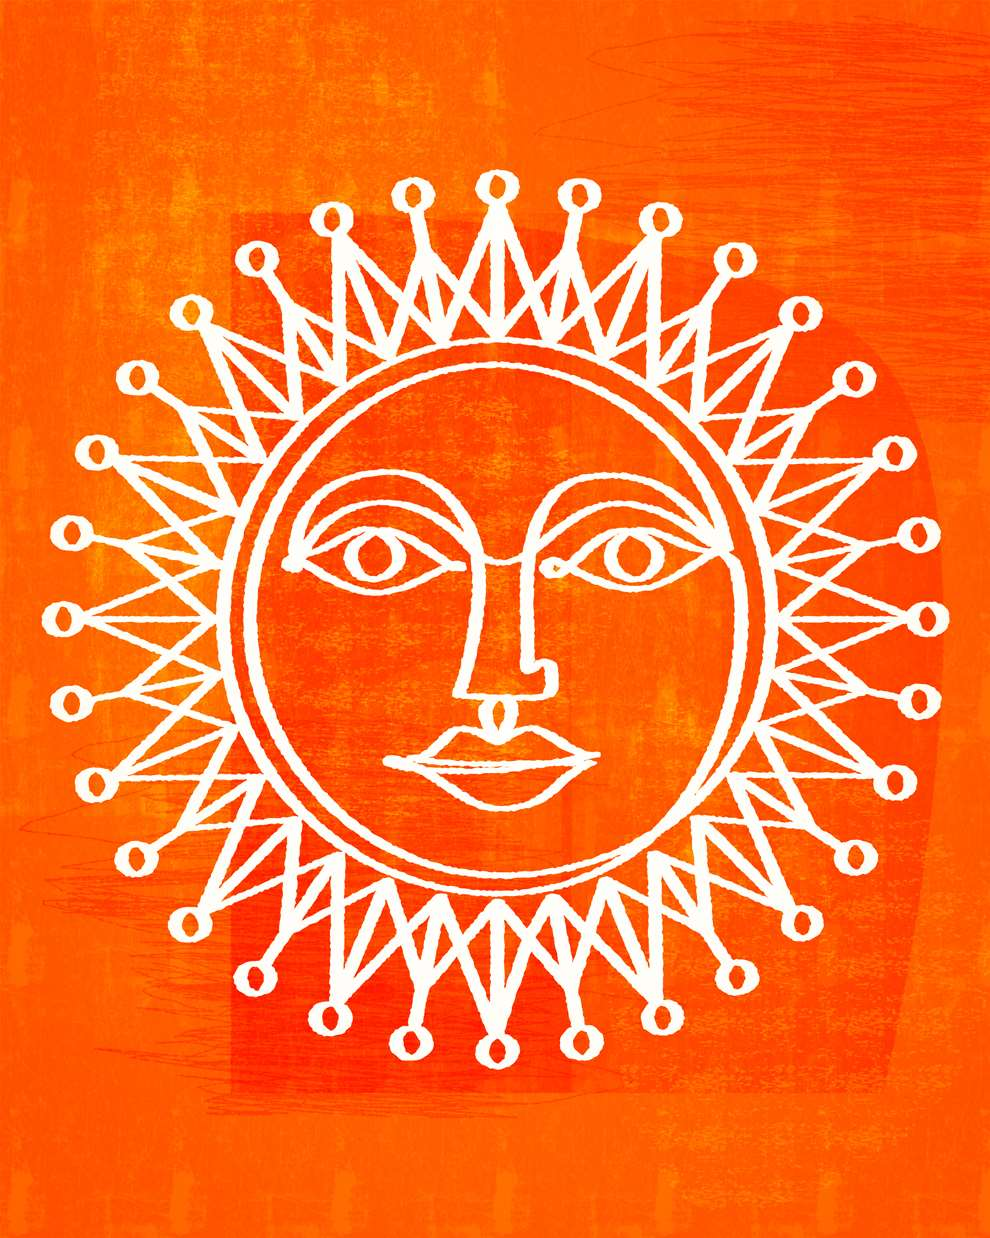 Paul Wearing, Digital line drawing of a sun on a bright textural orange background.